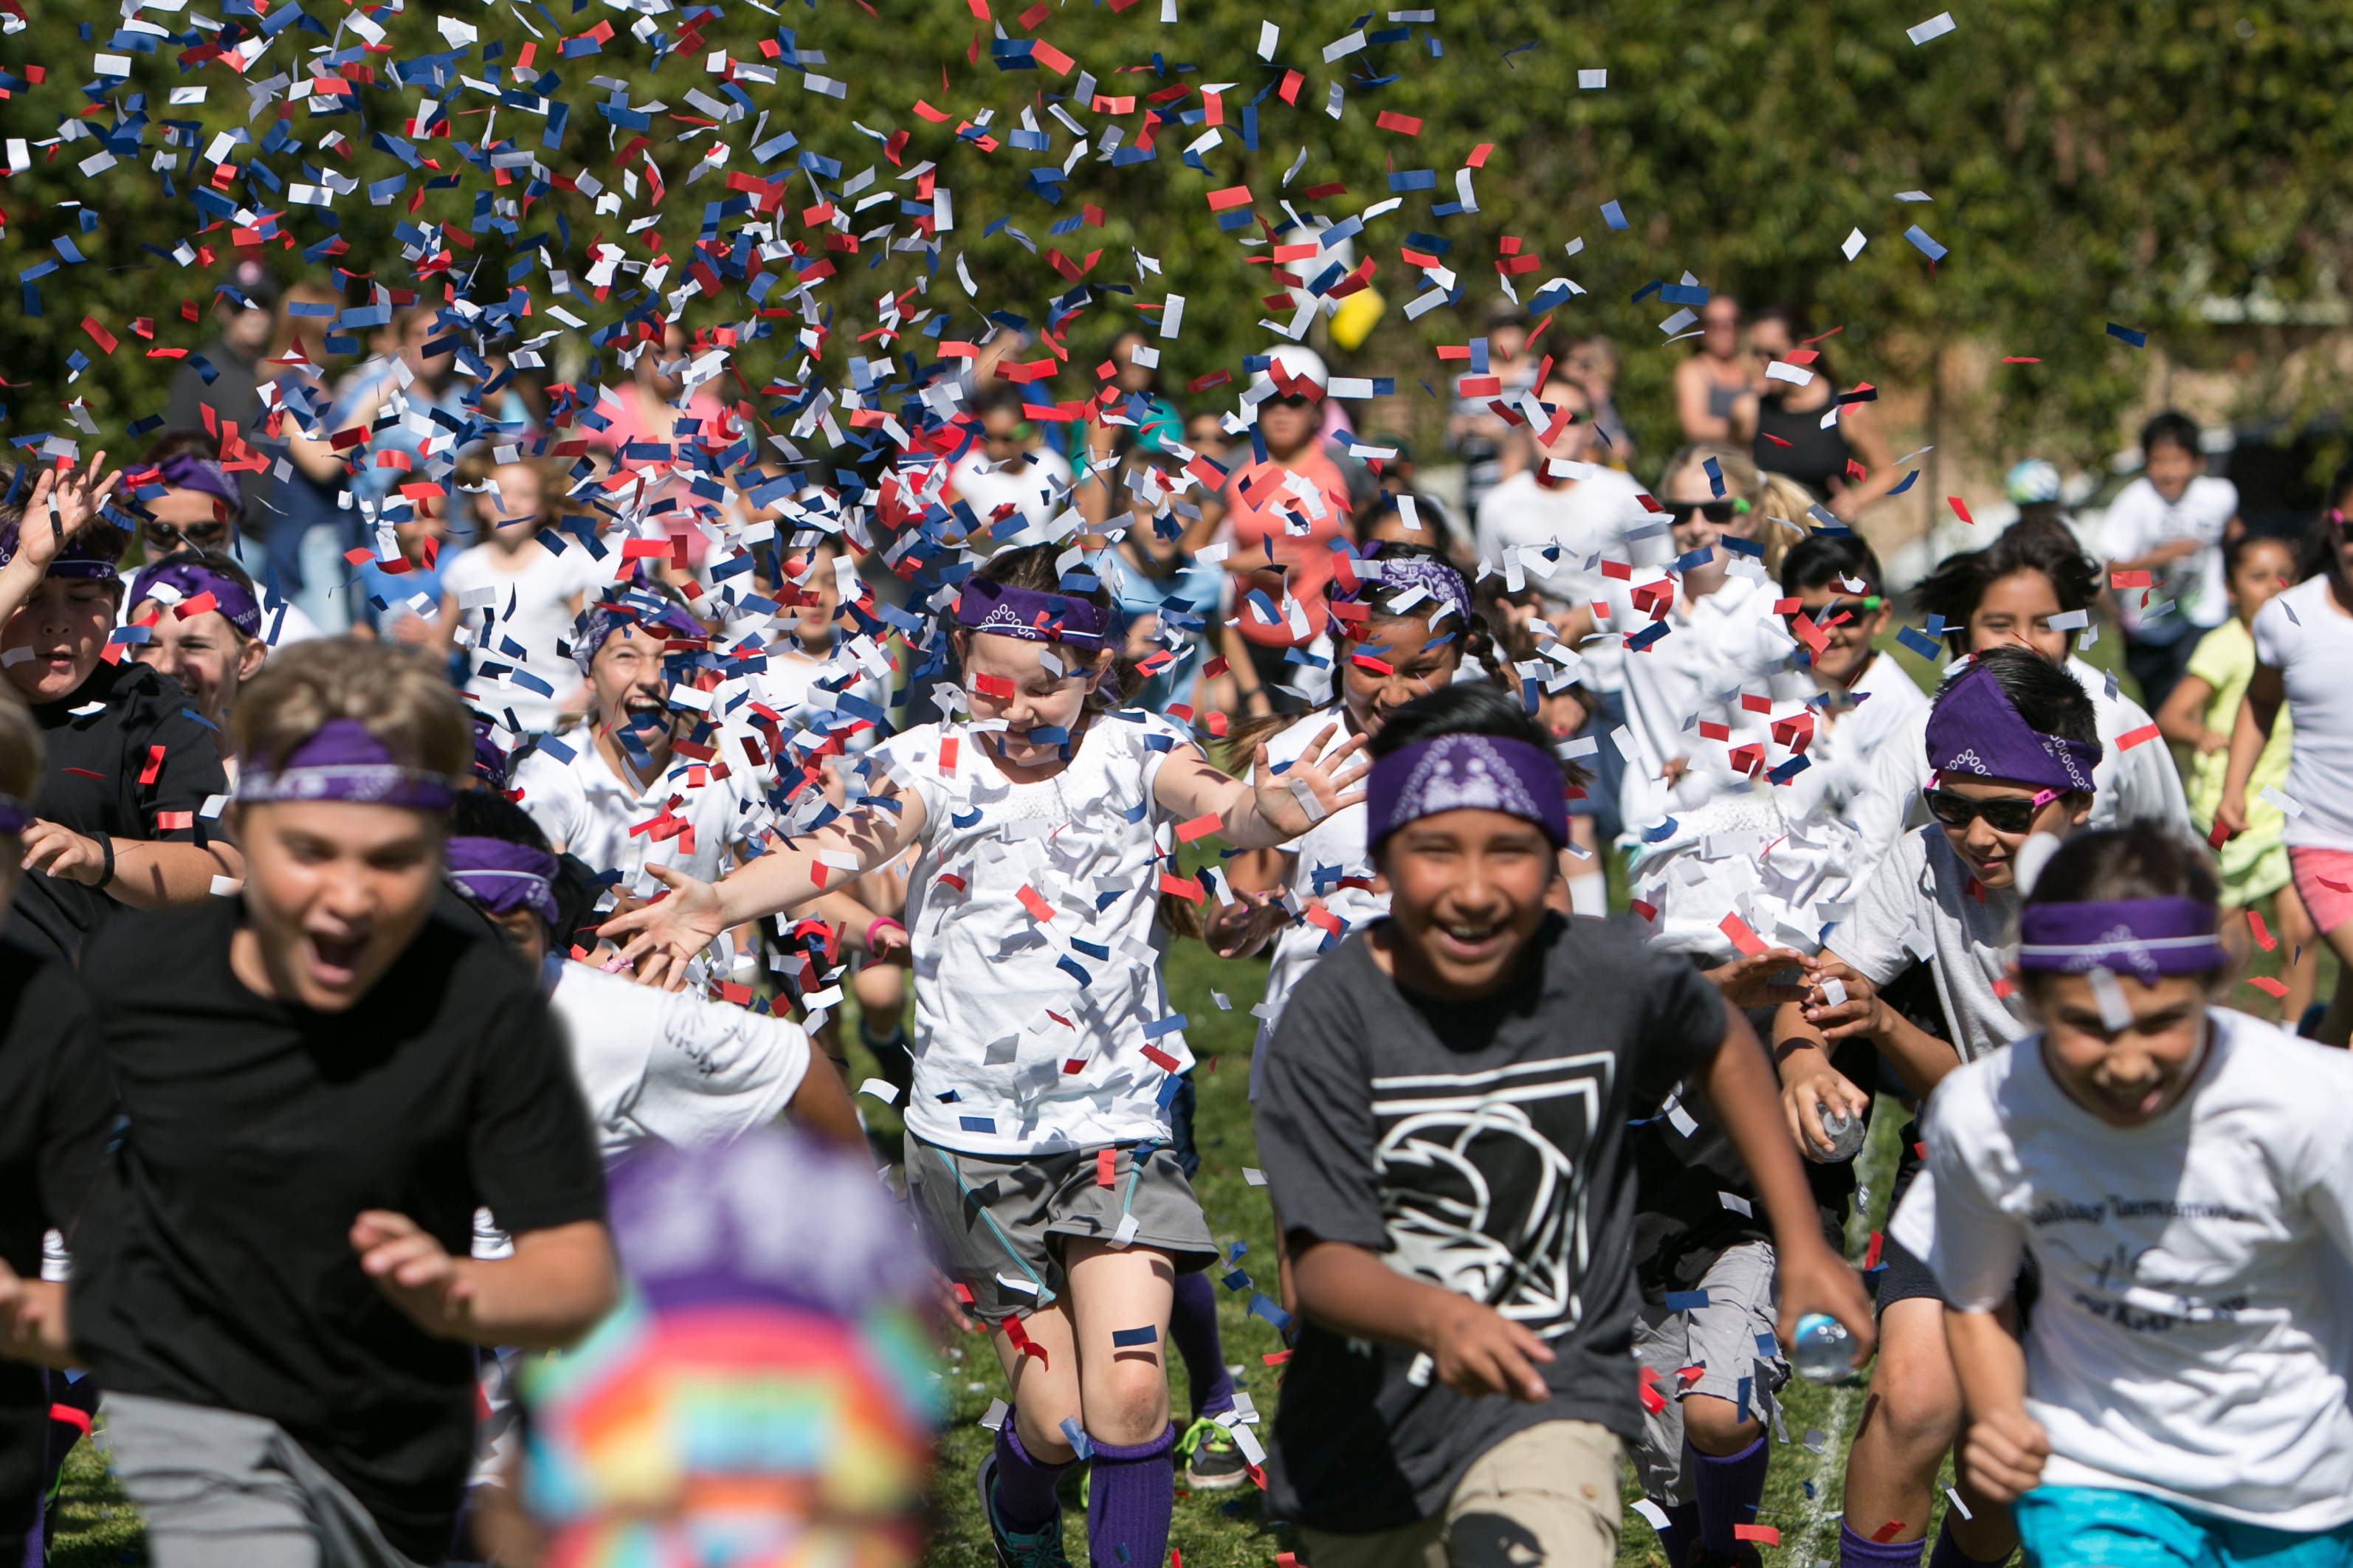 Confetti rains down on students who participate in last year's Jog-A-Thon. Photo: Courtesy of Rod Foster